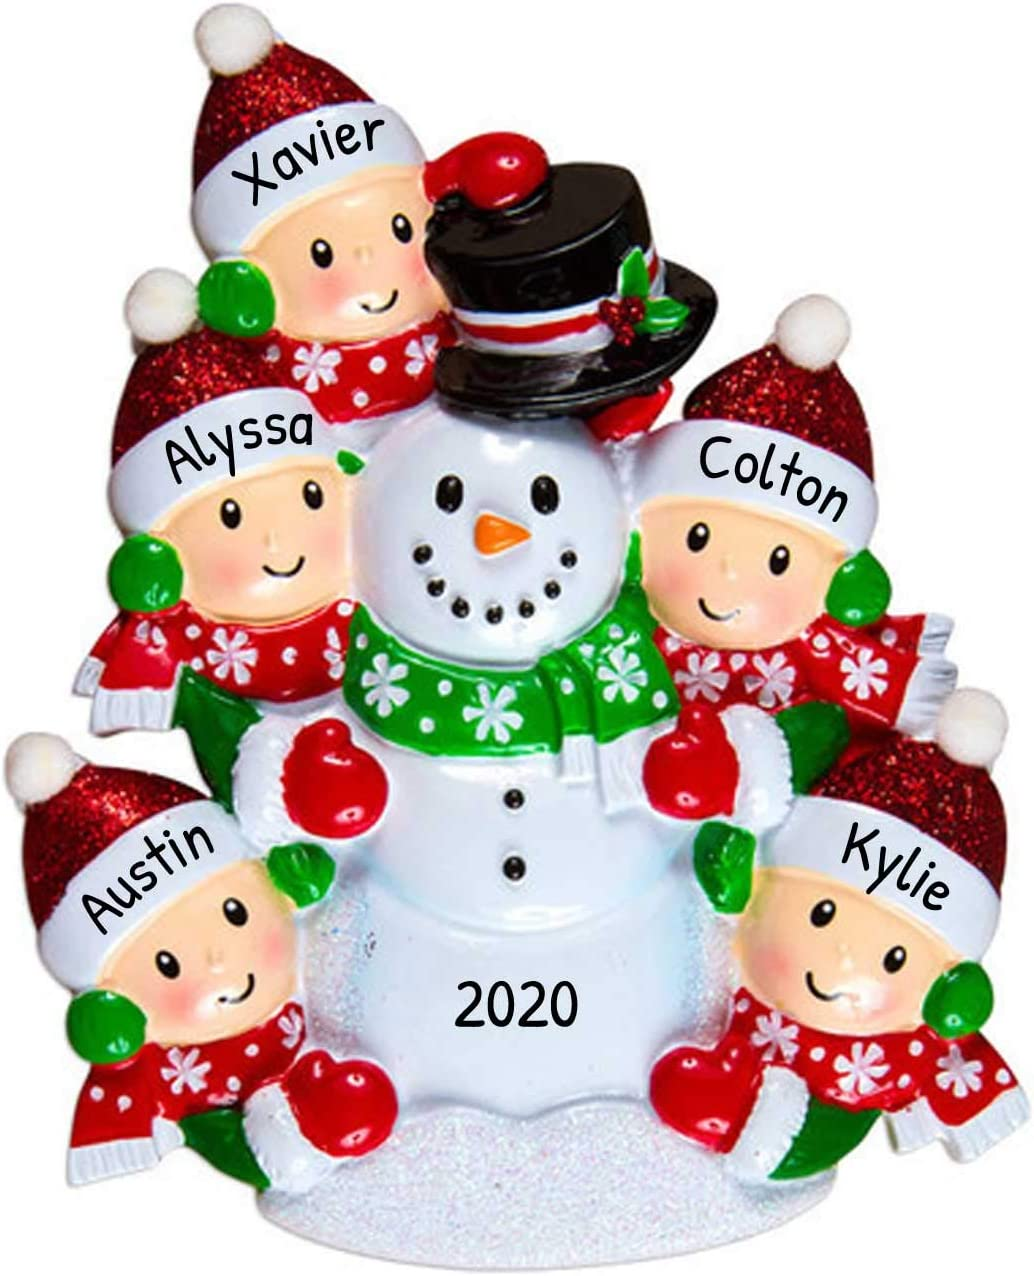 Personalized Building Snowman Family Of 3 Christmas Tree Ornament 2020 Parent Child Friend Red Hat Play Snowball Holiday Tradition Winter Activity 1st Gift Year Free Customization Three Home Kitchen Amazon Com